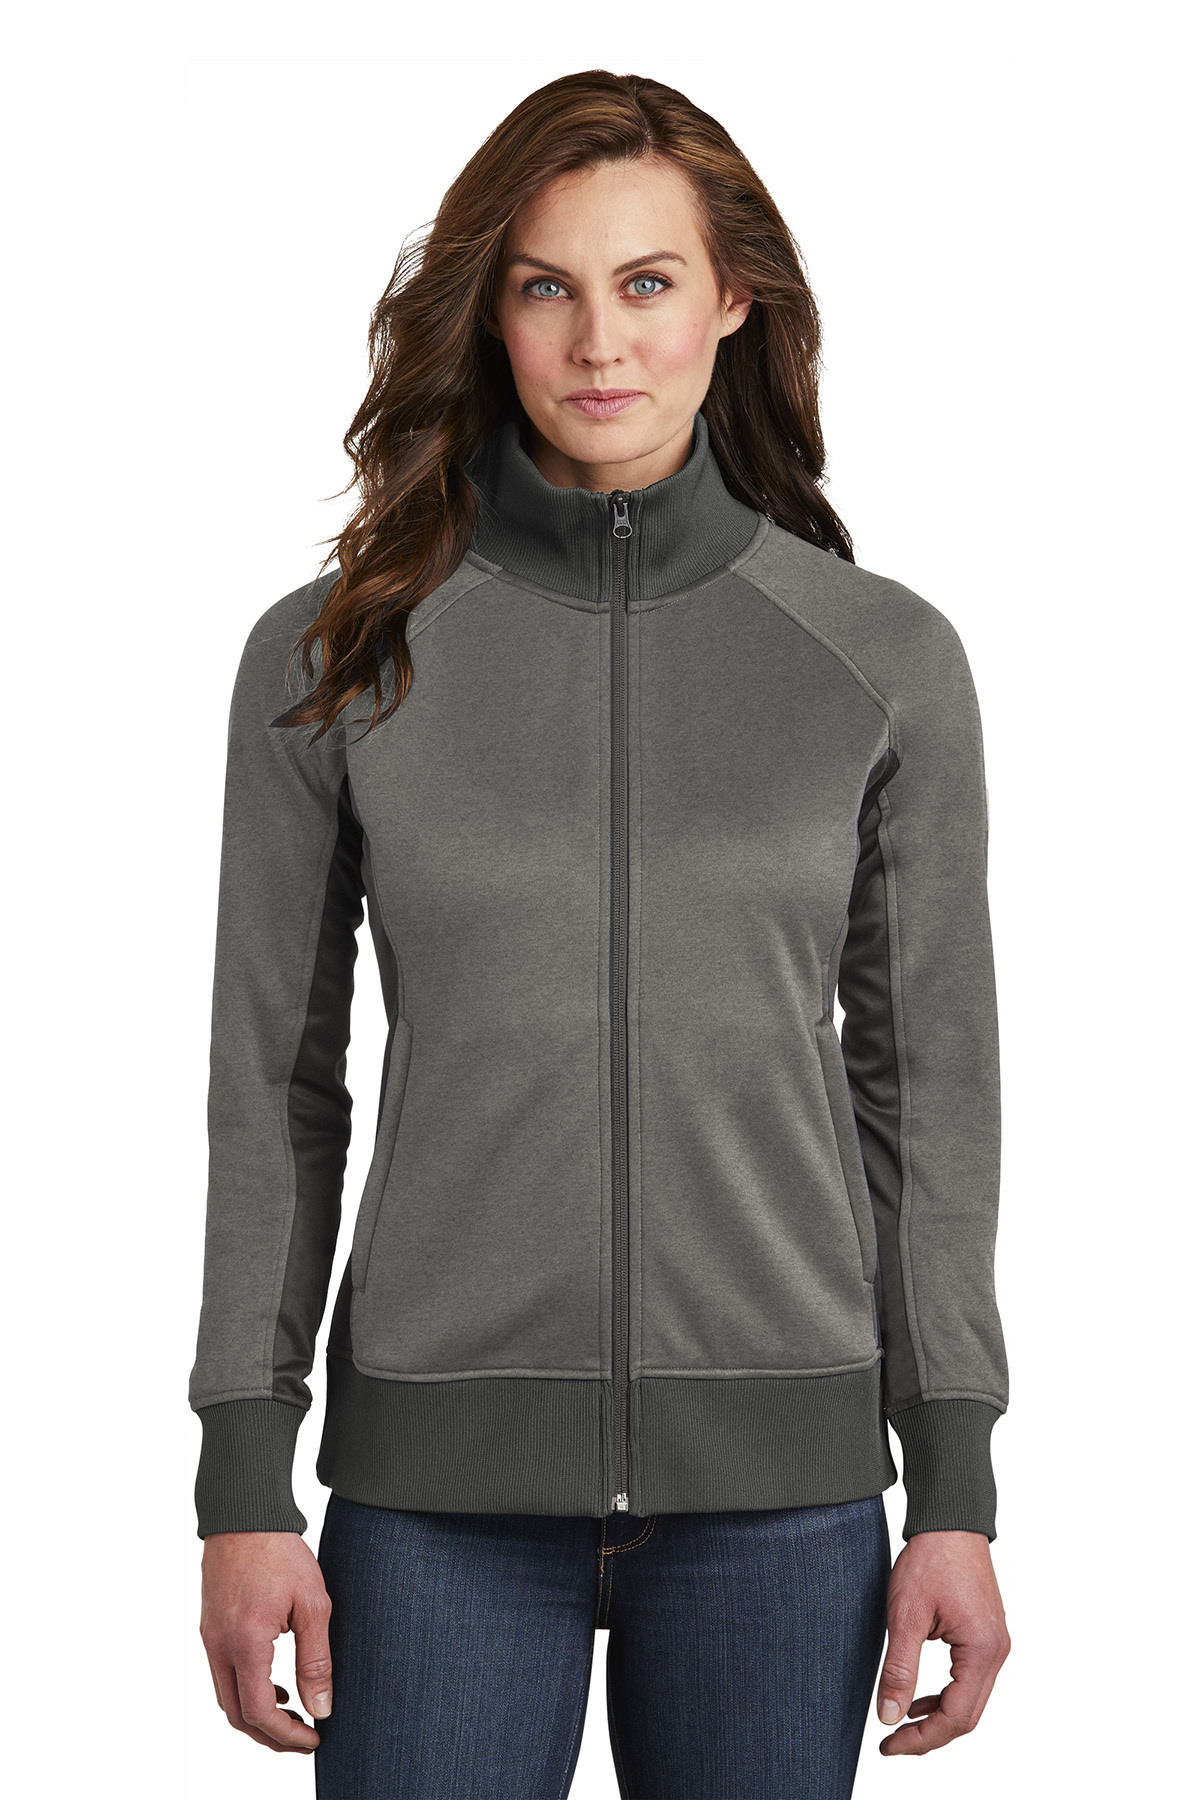 db4cc71c6 The North Face ® Ladies Tech Full-Zip Fleece Jacket | Outerwear ...